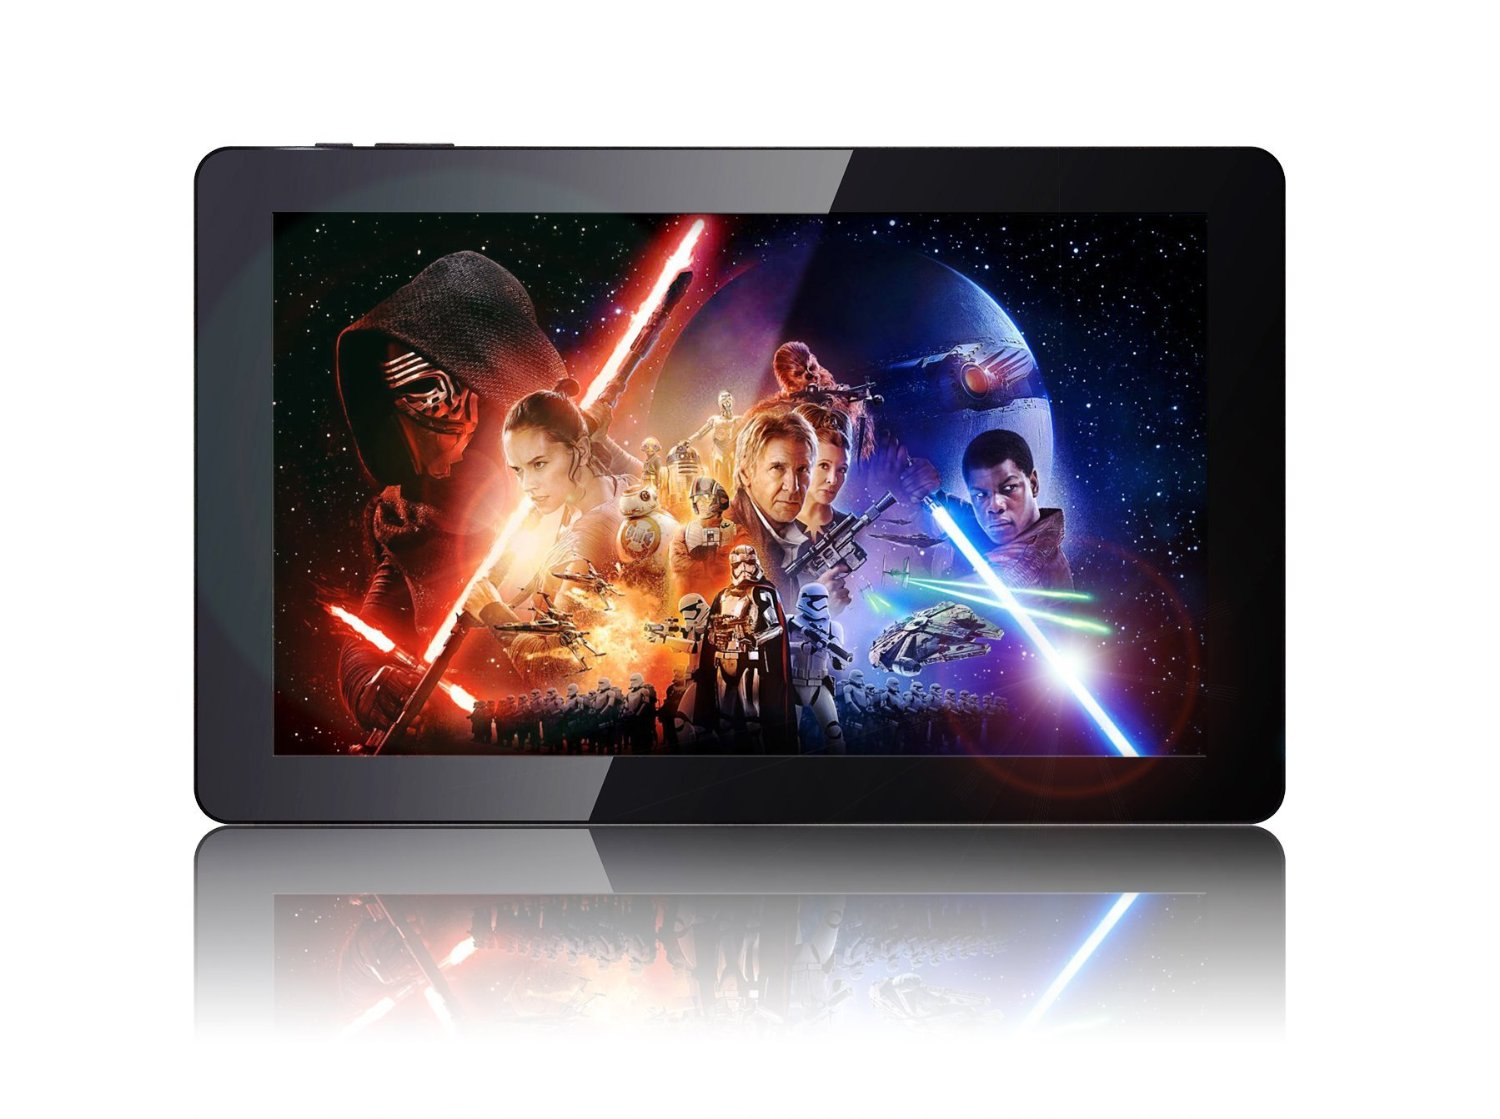 Fusion5 108 Octa Core Android Tablet - Best Reviews Tablet